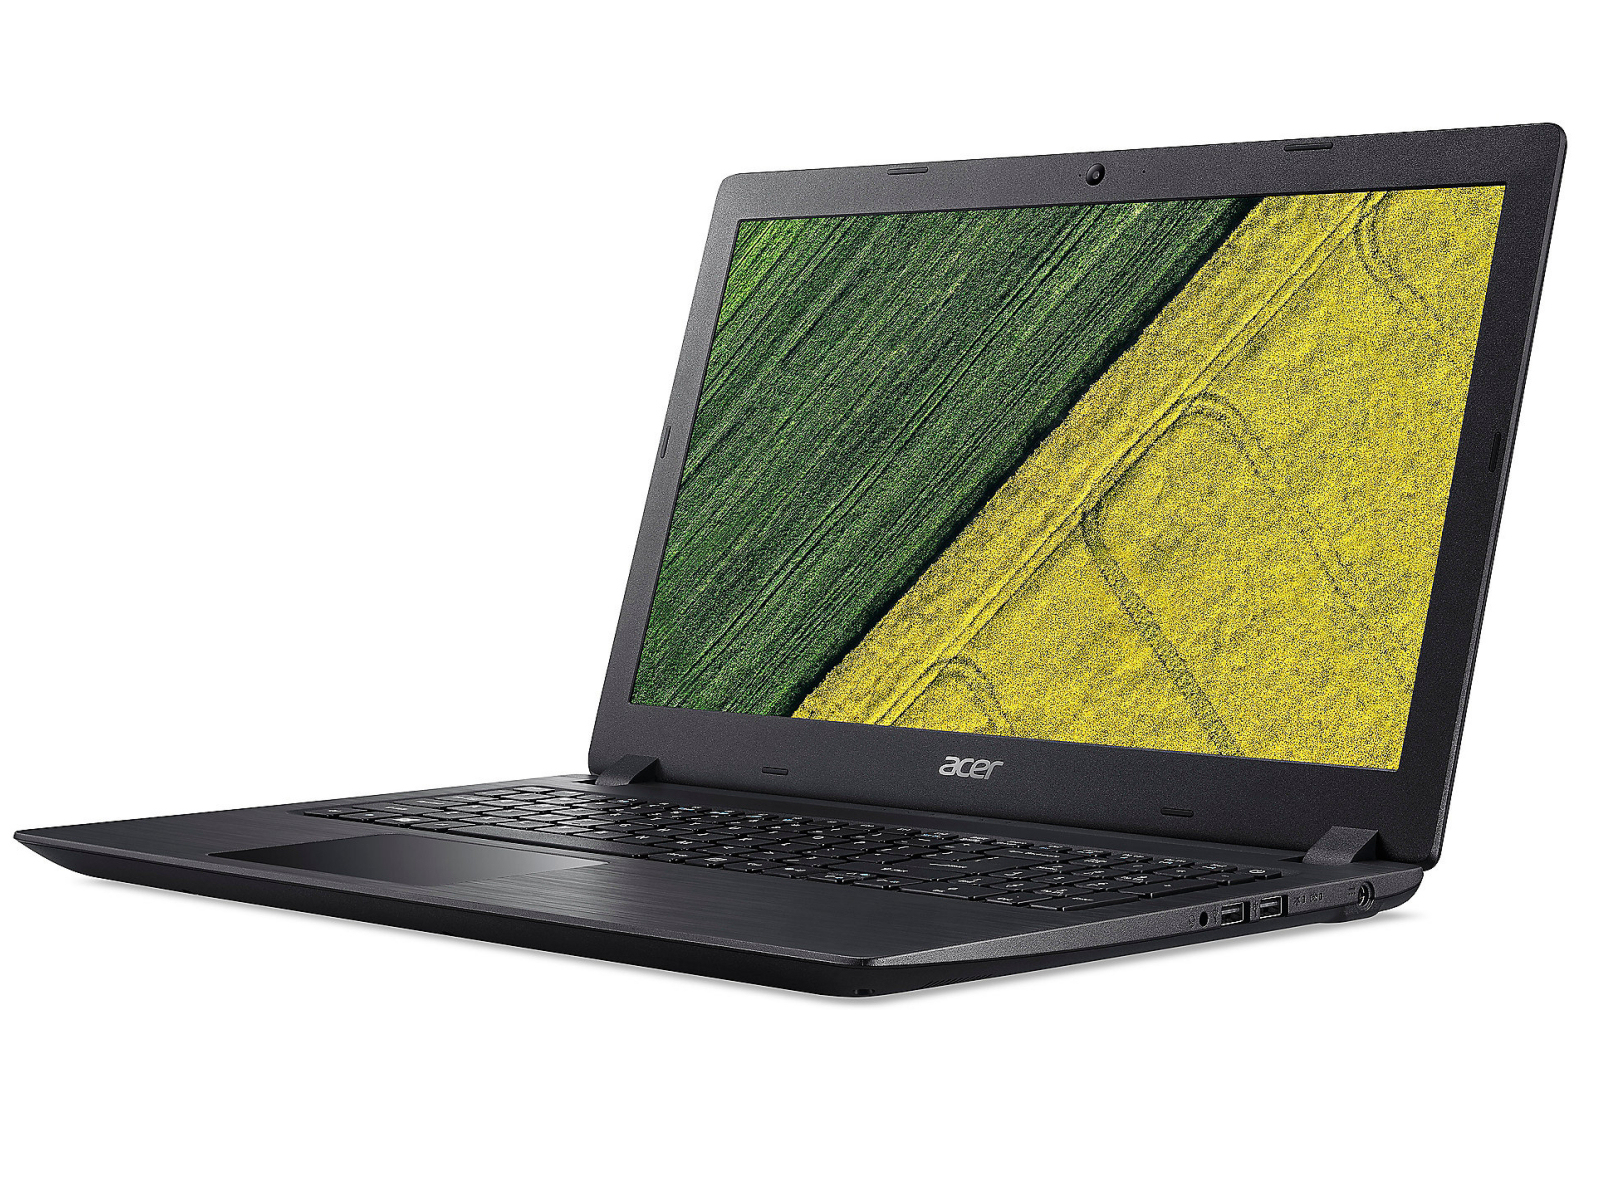 ACER TRAVELMATE 6593 NOTEBOOK BROADCOM BLUETOOTH DRIVER WINDOWS